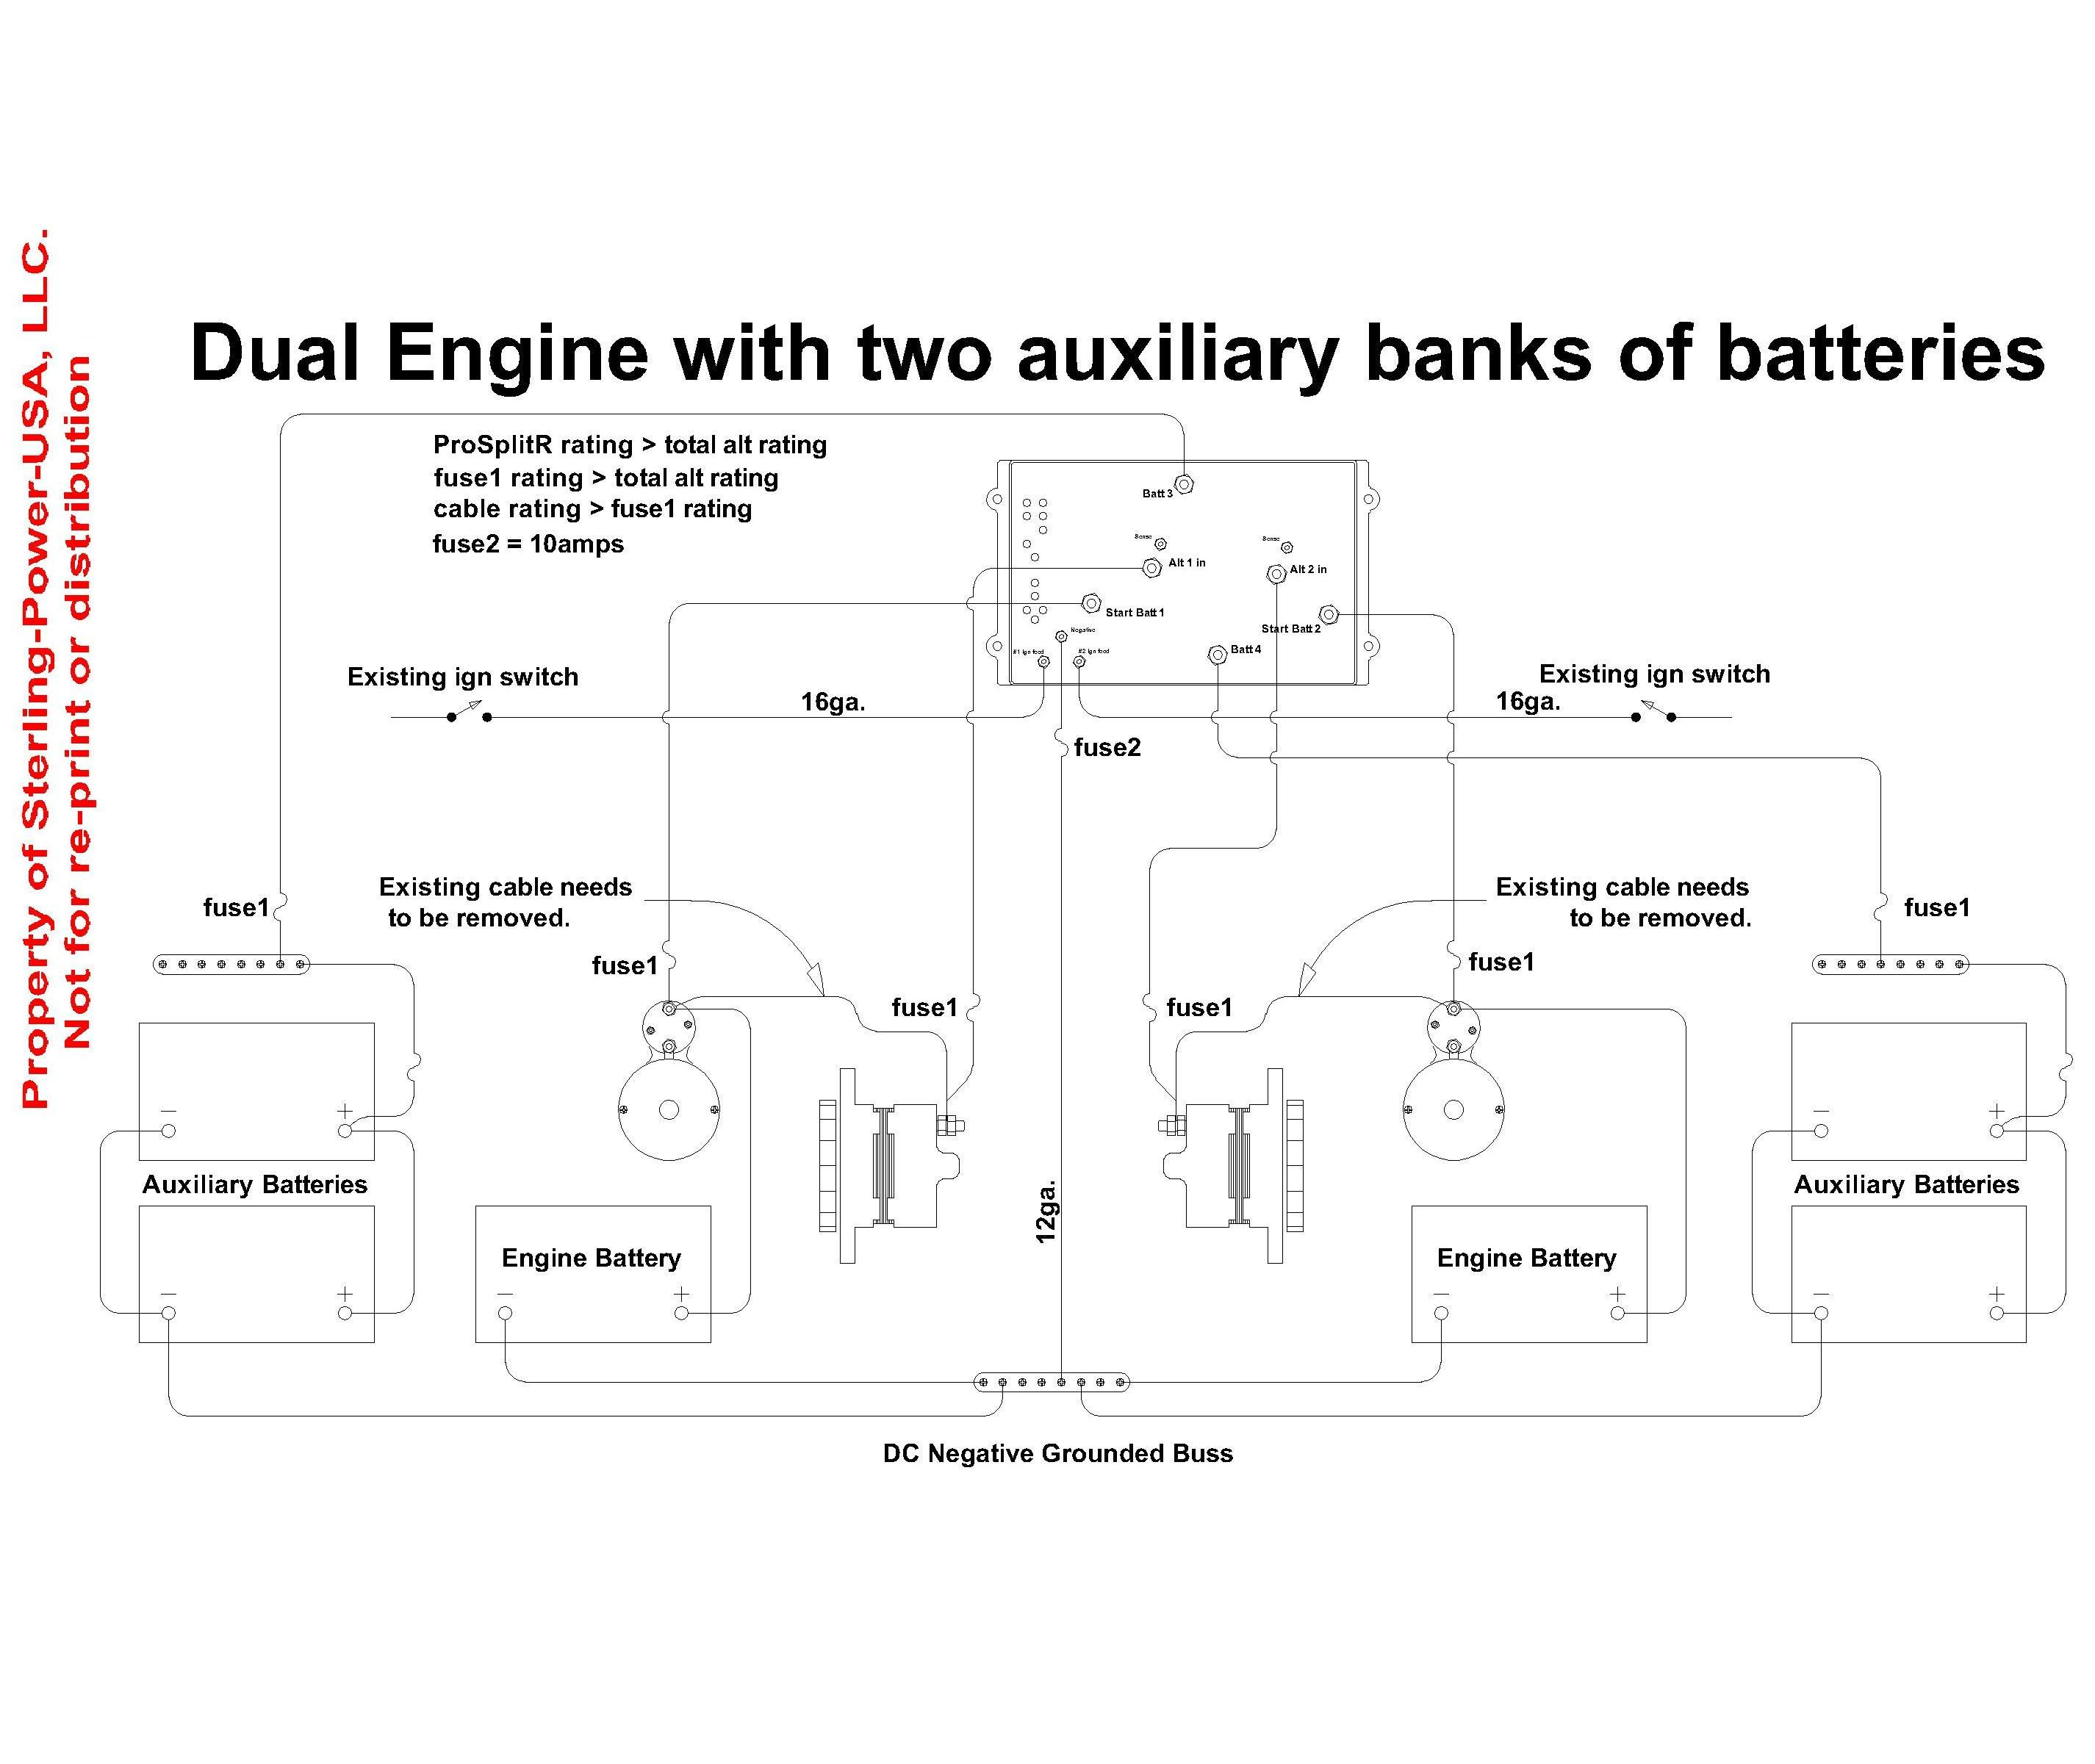 Ultra Wiring Diagram Schematic Diagrams 2006 Jeep Liberty Low Beamshigh Beamswiring Diagramfuses Literature For Pro Charge Marine Battery 2003 Smoker Craft